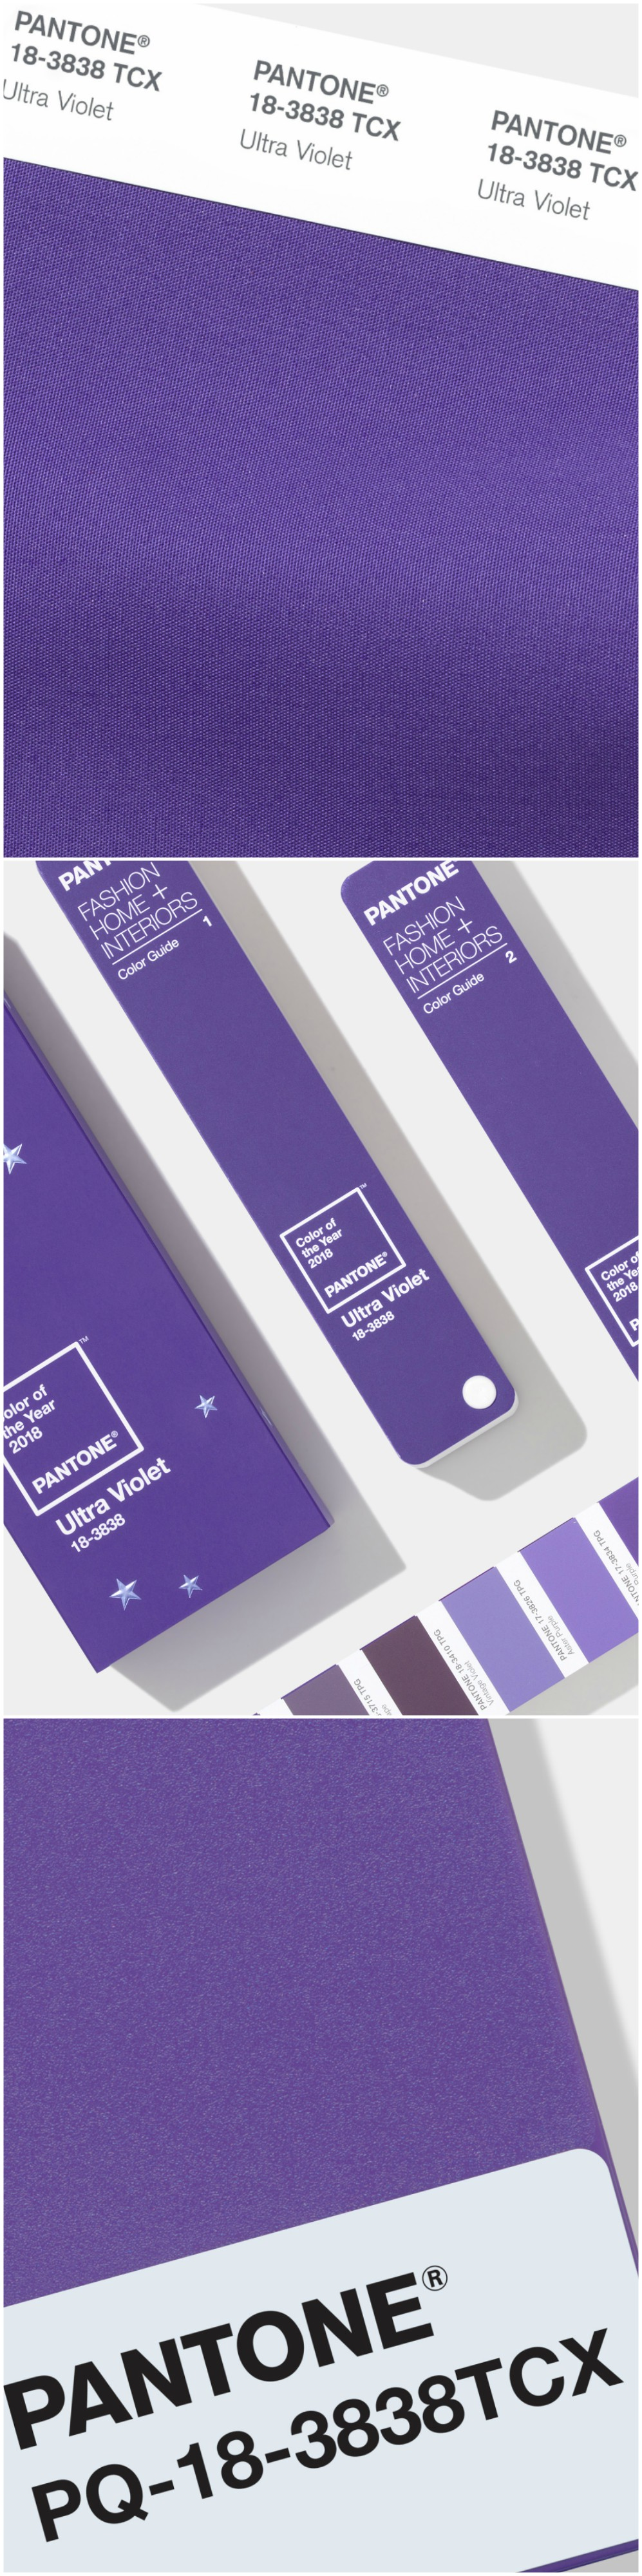 Pantone has announced Ultra Violet as its Colour of the Year for 2018. This bold, forward-thinking purple hue is distinct and complex, and a rather refreshing choice. Described as a 'dramatically provocative and thoughtful purple shade', Pantone's 18-3838 Ultra Violet conveys originality, ingenuity and visionary thinking that points us towards the future. #pantone #UltraViolet #purple #colour #colourpop #trends #colouroftheyear #coty